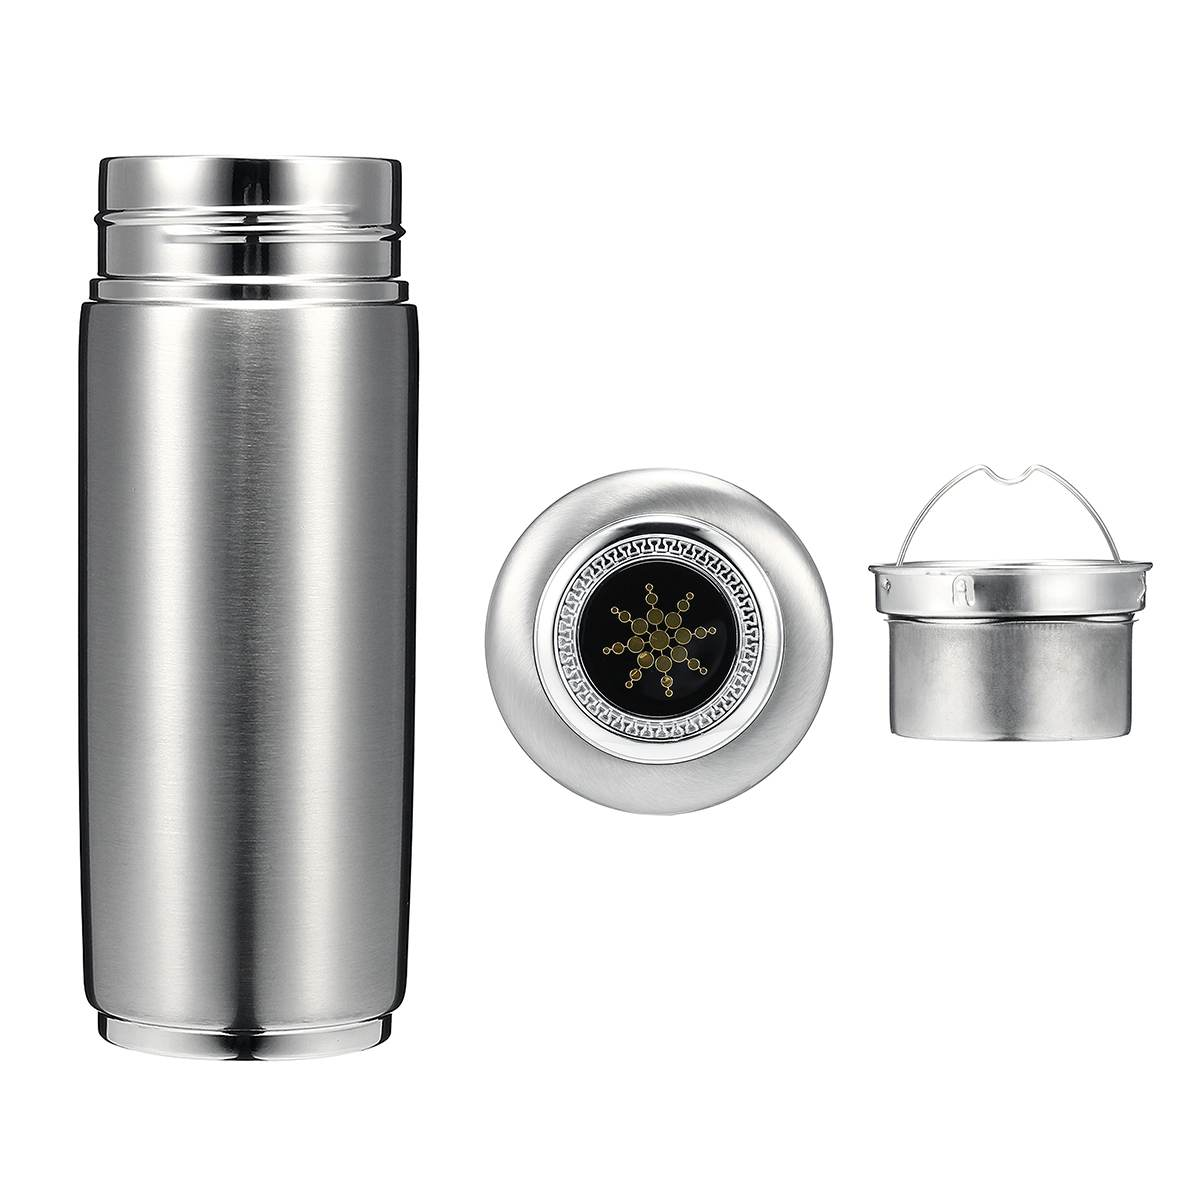 400ml Stainless Steel Quantum Alkaline Filtered Water Cup Balance Bio Energy Nanos Ionizer Flask Bottle Electrolytic Energy Cup400ml Stainless Steel Quantum Alkaline Filtered Water Cup Balance Bio Energy Nanos Ionizer Flask Bottle Electrolytic Energy Cup